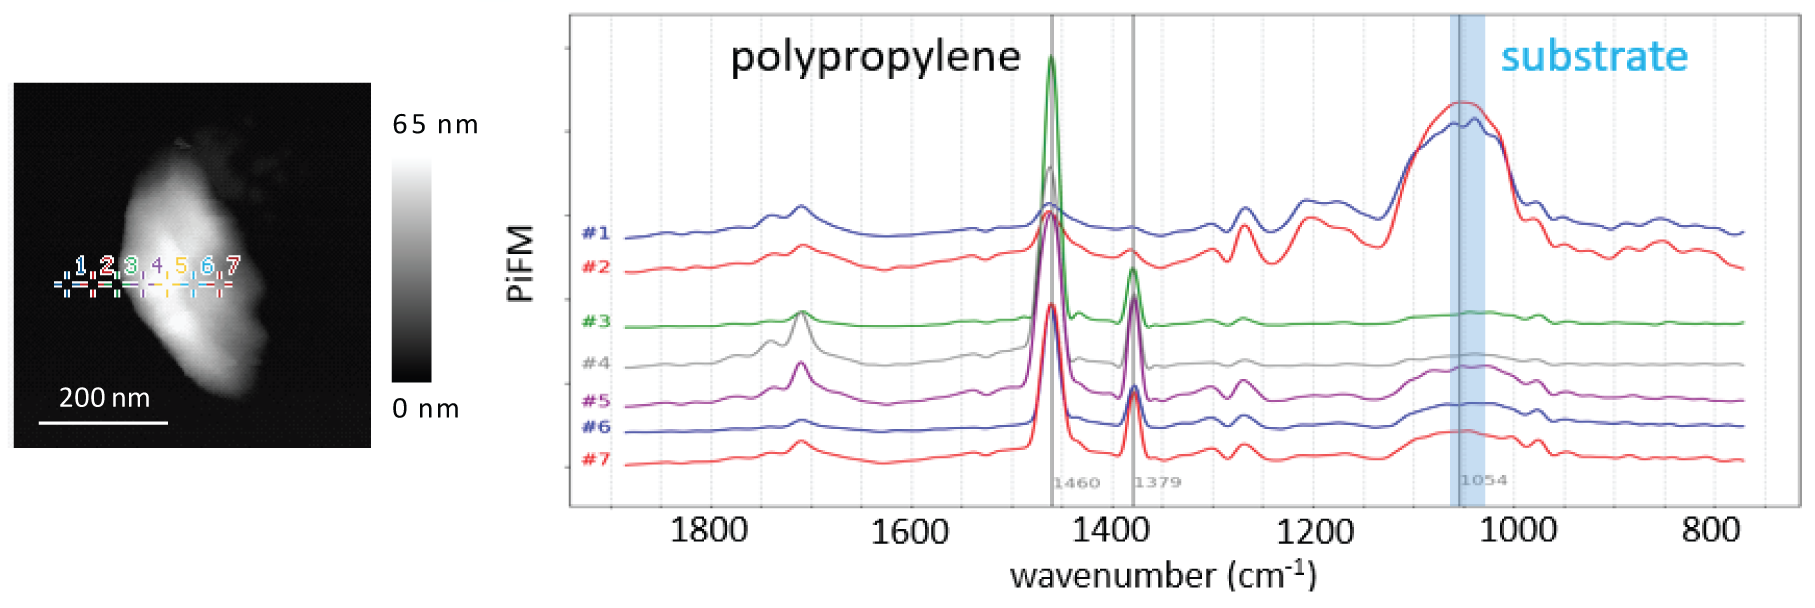 Image of nano IR (FTIR) spectra taken on polypropylene nano particle